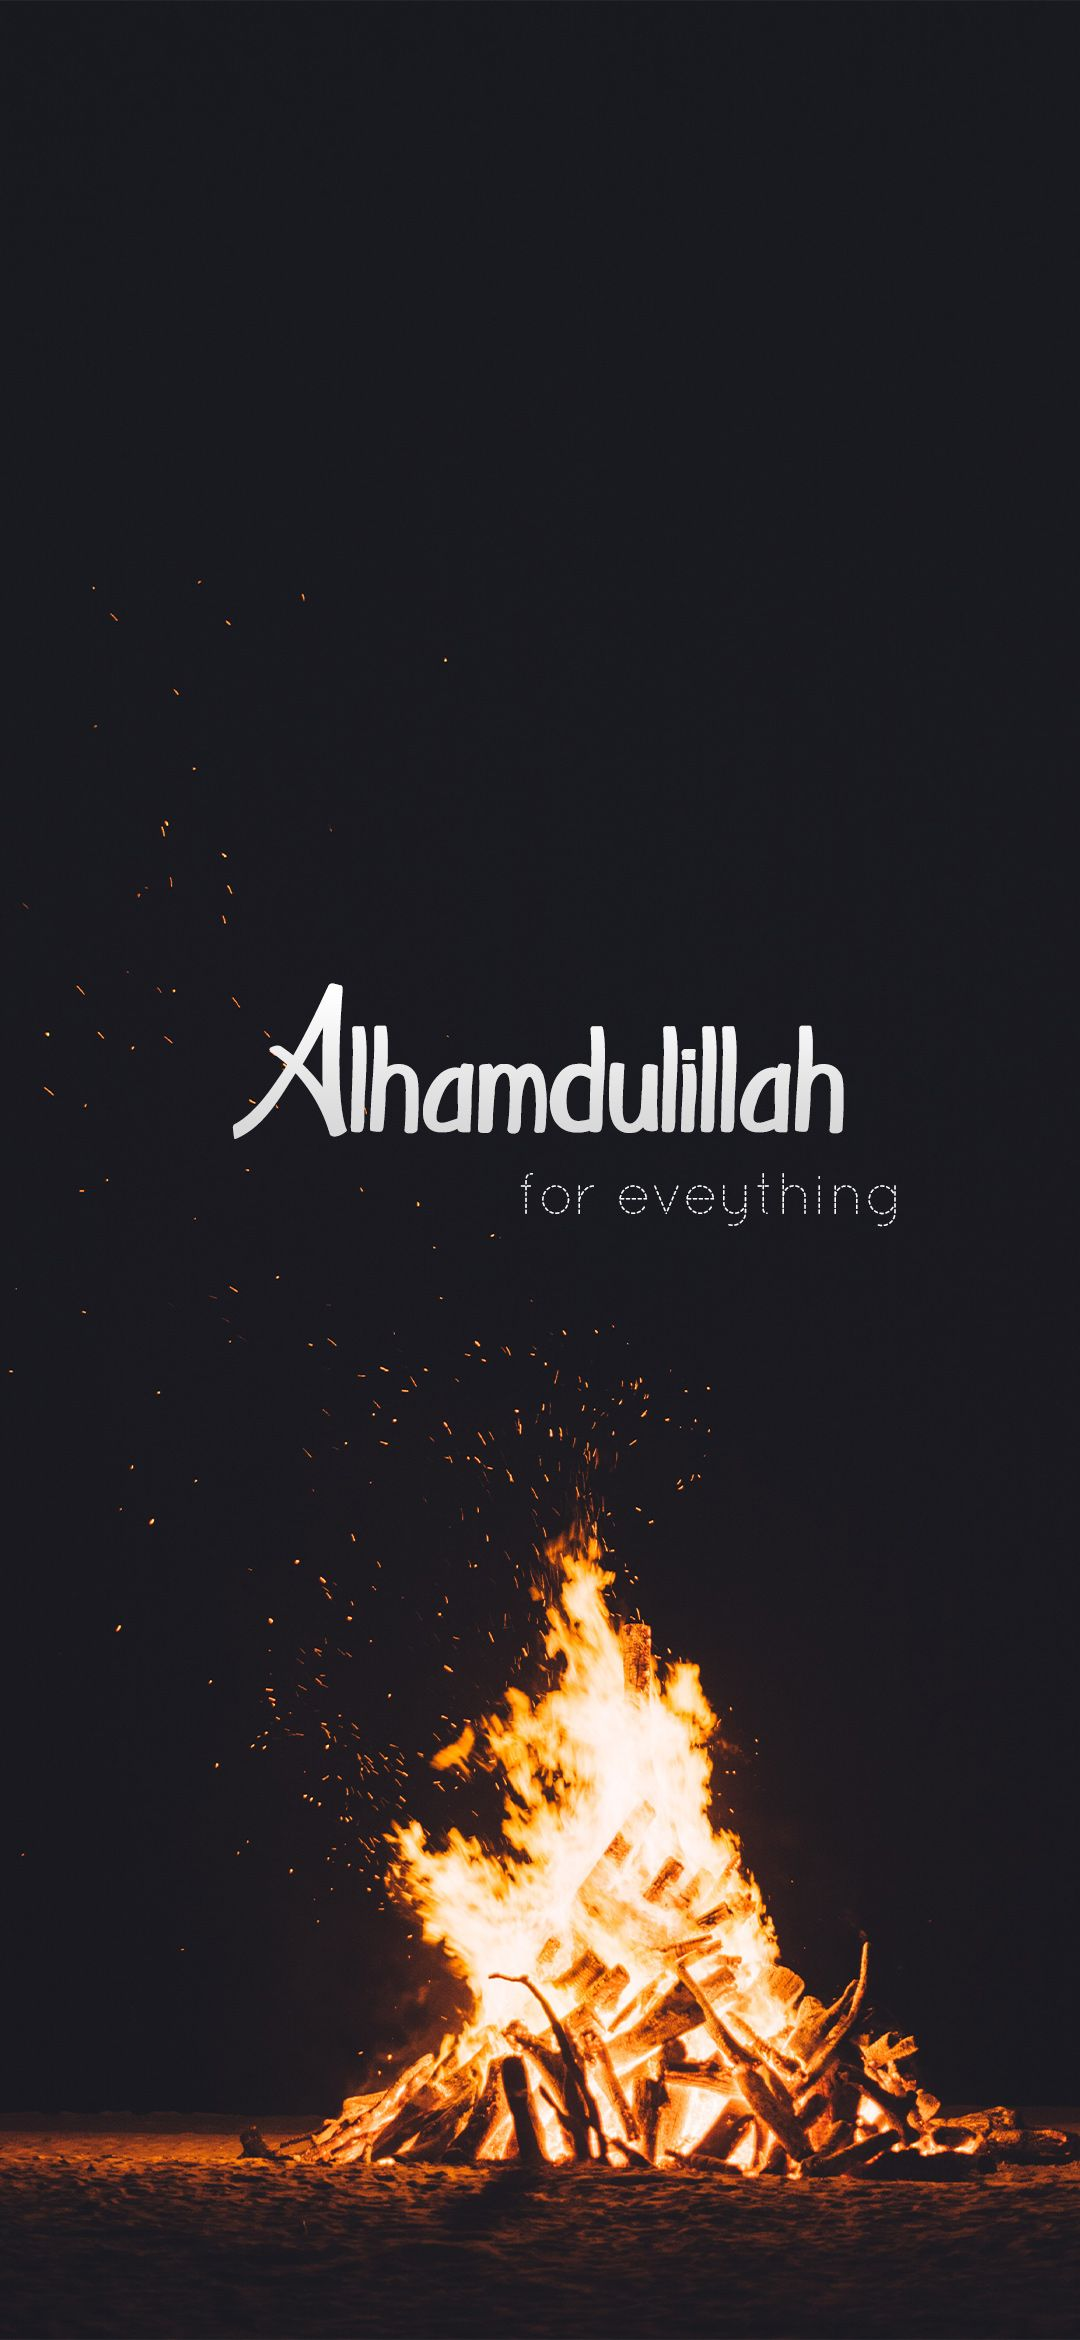 Alhumdulilah For Everything Hd Wallpaper Islamic Wallpaper Iphone Islamic Quotes Wallpaper Islamic Wallpaper Hd